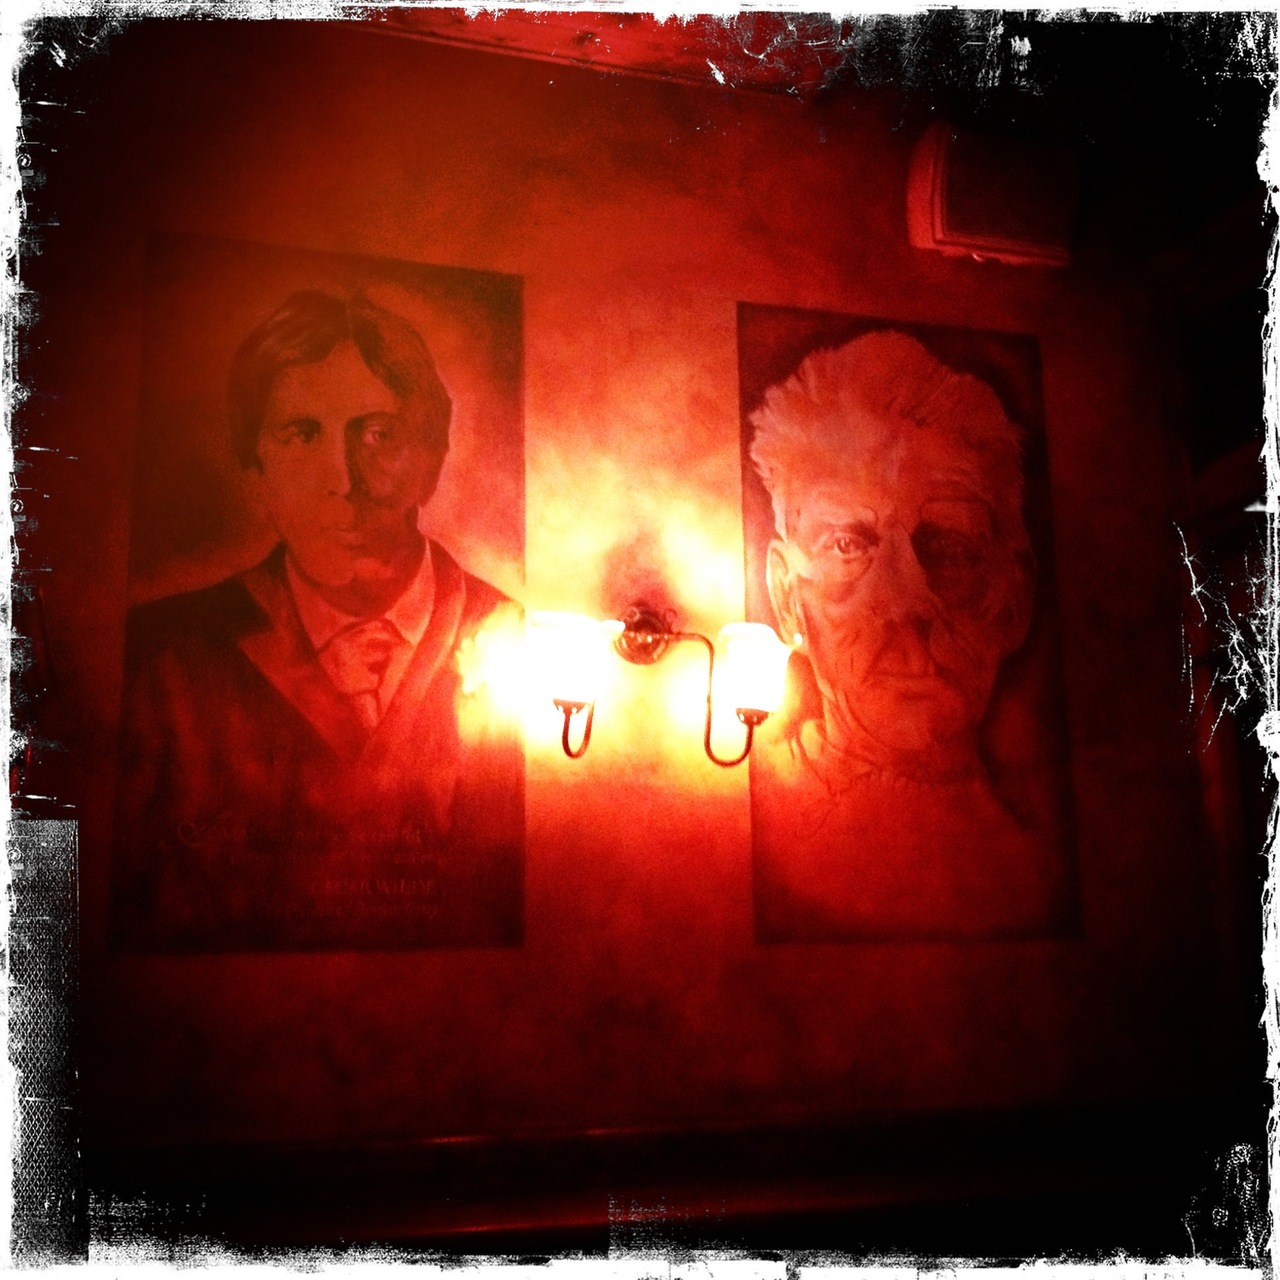 Hangin' with Wilde and Beckett @FadoDC, #pub of dreams. #dc #EireApparent